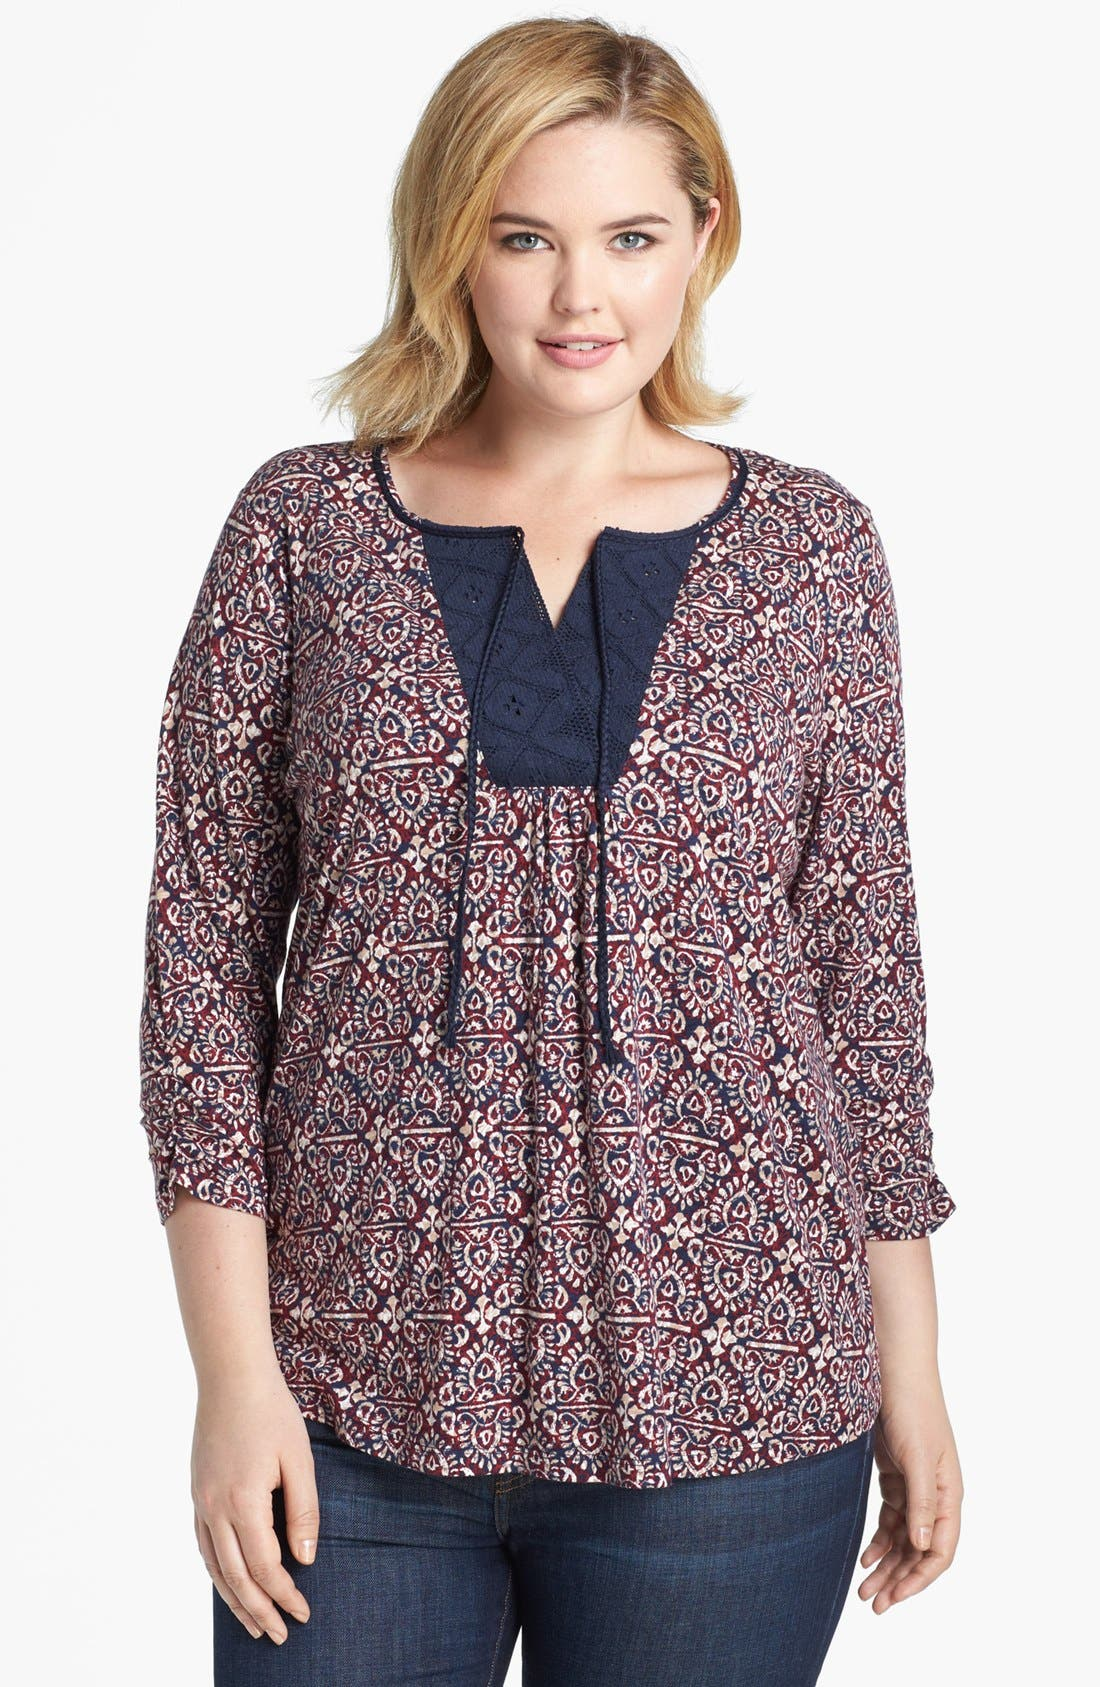 Main Image - Lucky Brand 'Moroccan' Print Top (Plus Size)